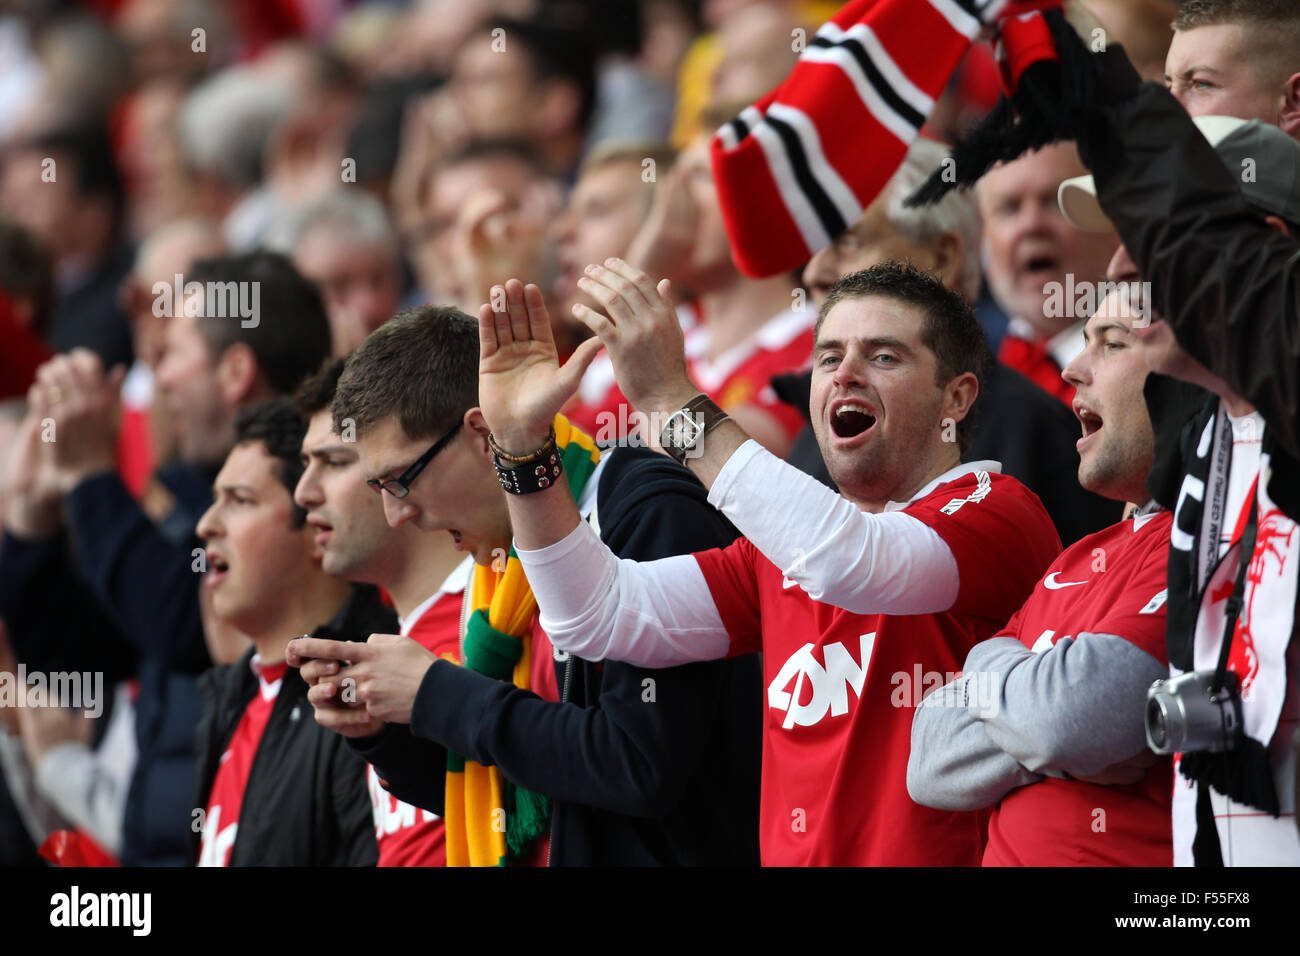 English football fans are seen at Wembley Stadium in 2013 Stock Photo